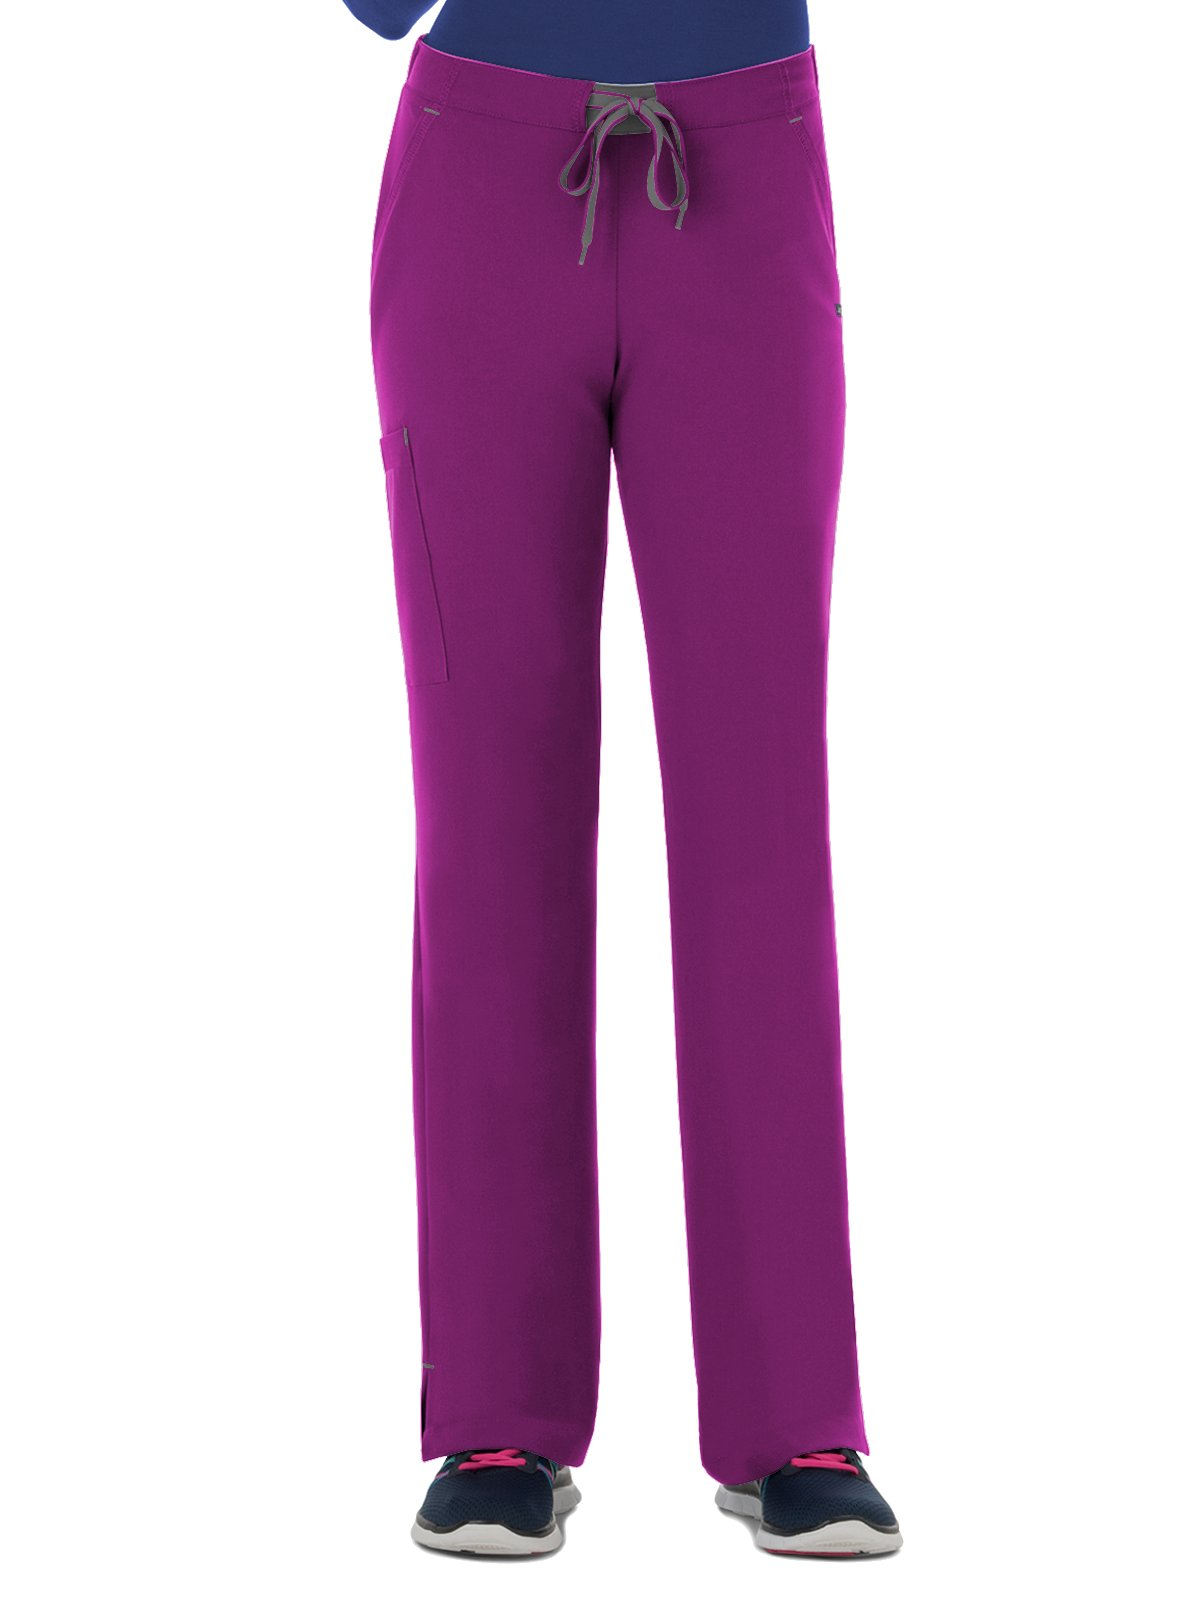 Modern Fit Collection by Jockey Women's Convertible Drawstring Scrub Pant X-Large Plumberry Wine